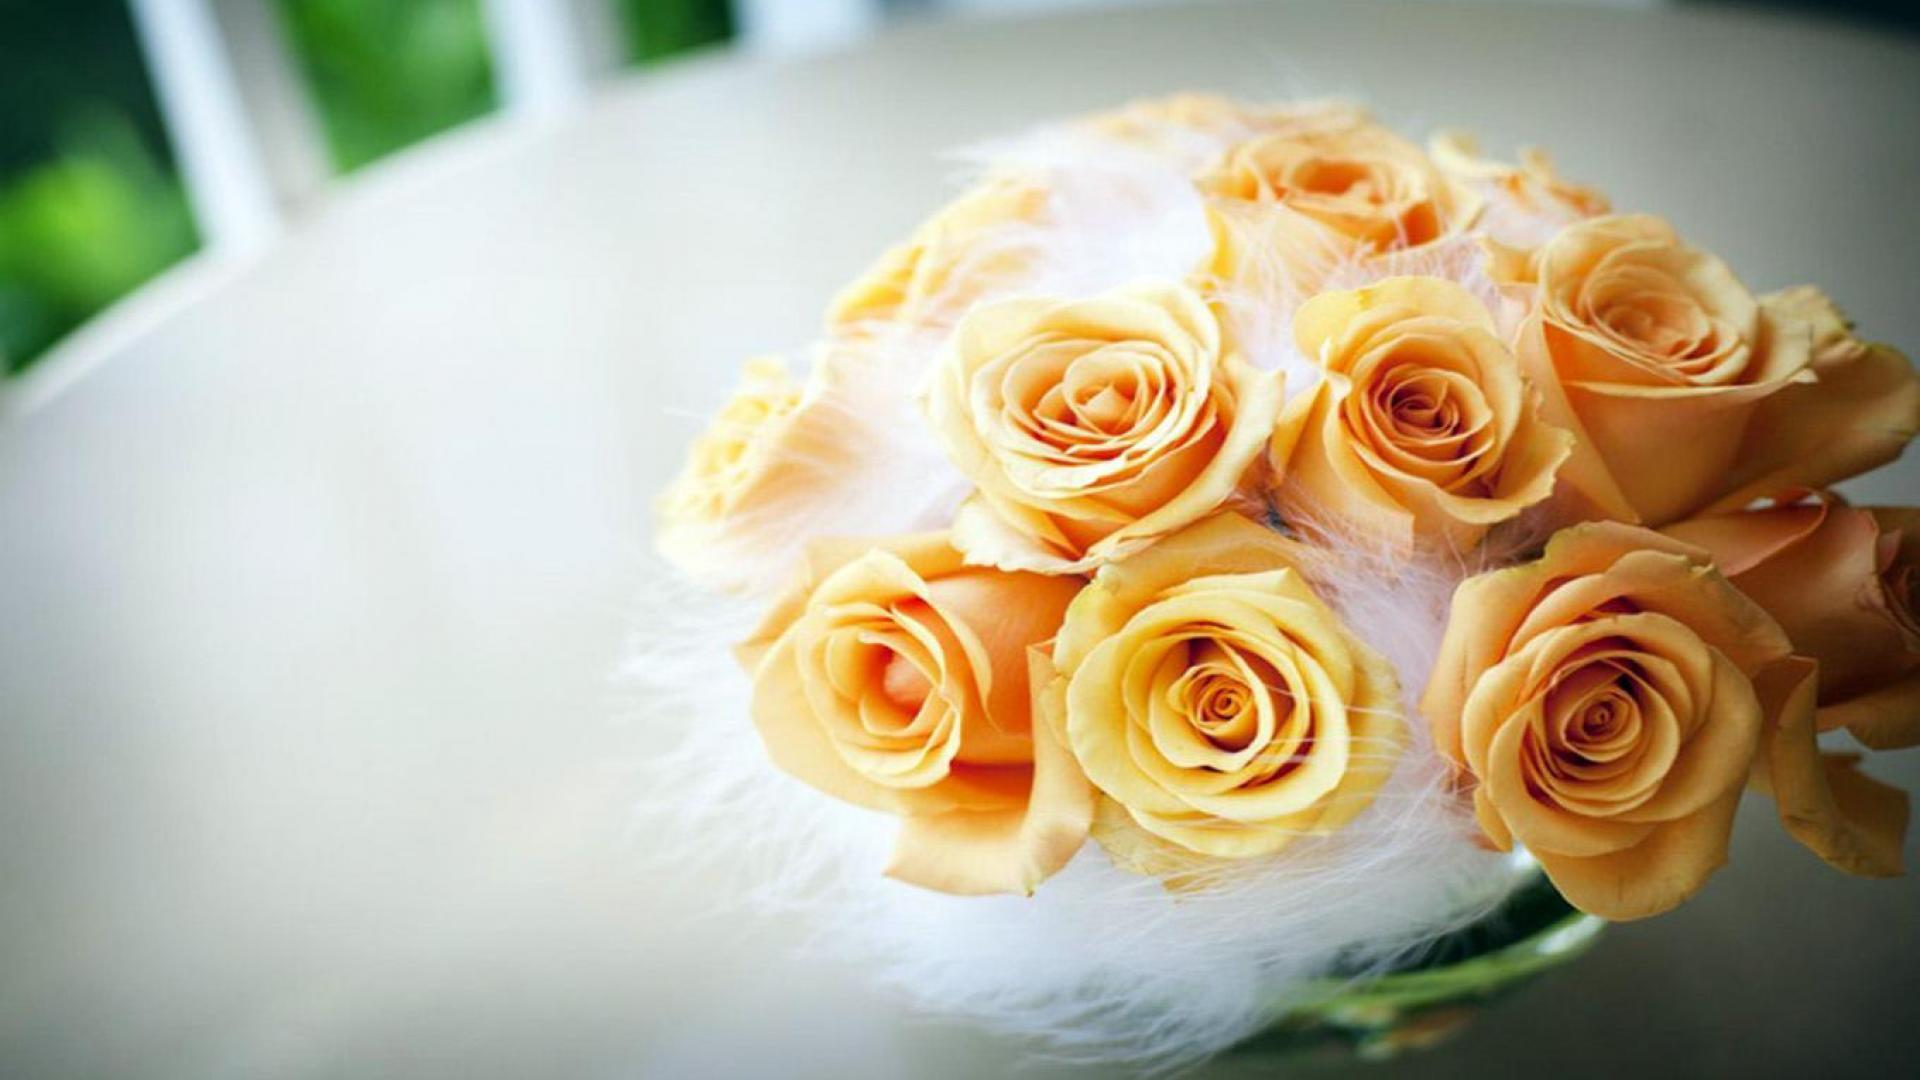 Beautiful-Yellow-Rose-HD-FX-1920×1080-Yellow-Rose-Image-Wallpape-wallpaper-wpc5802696